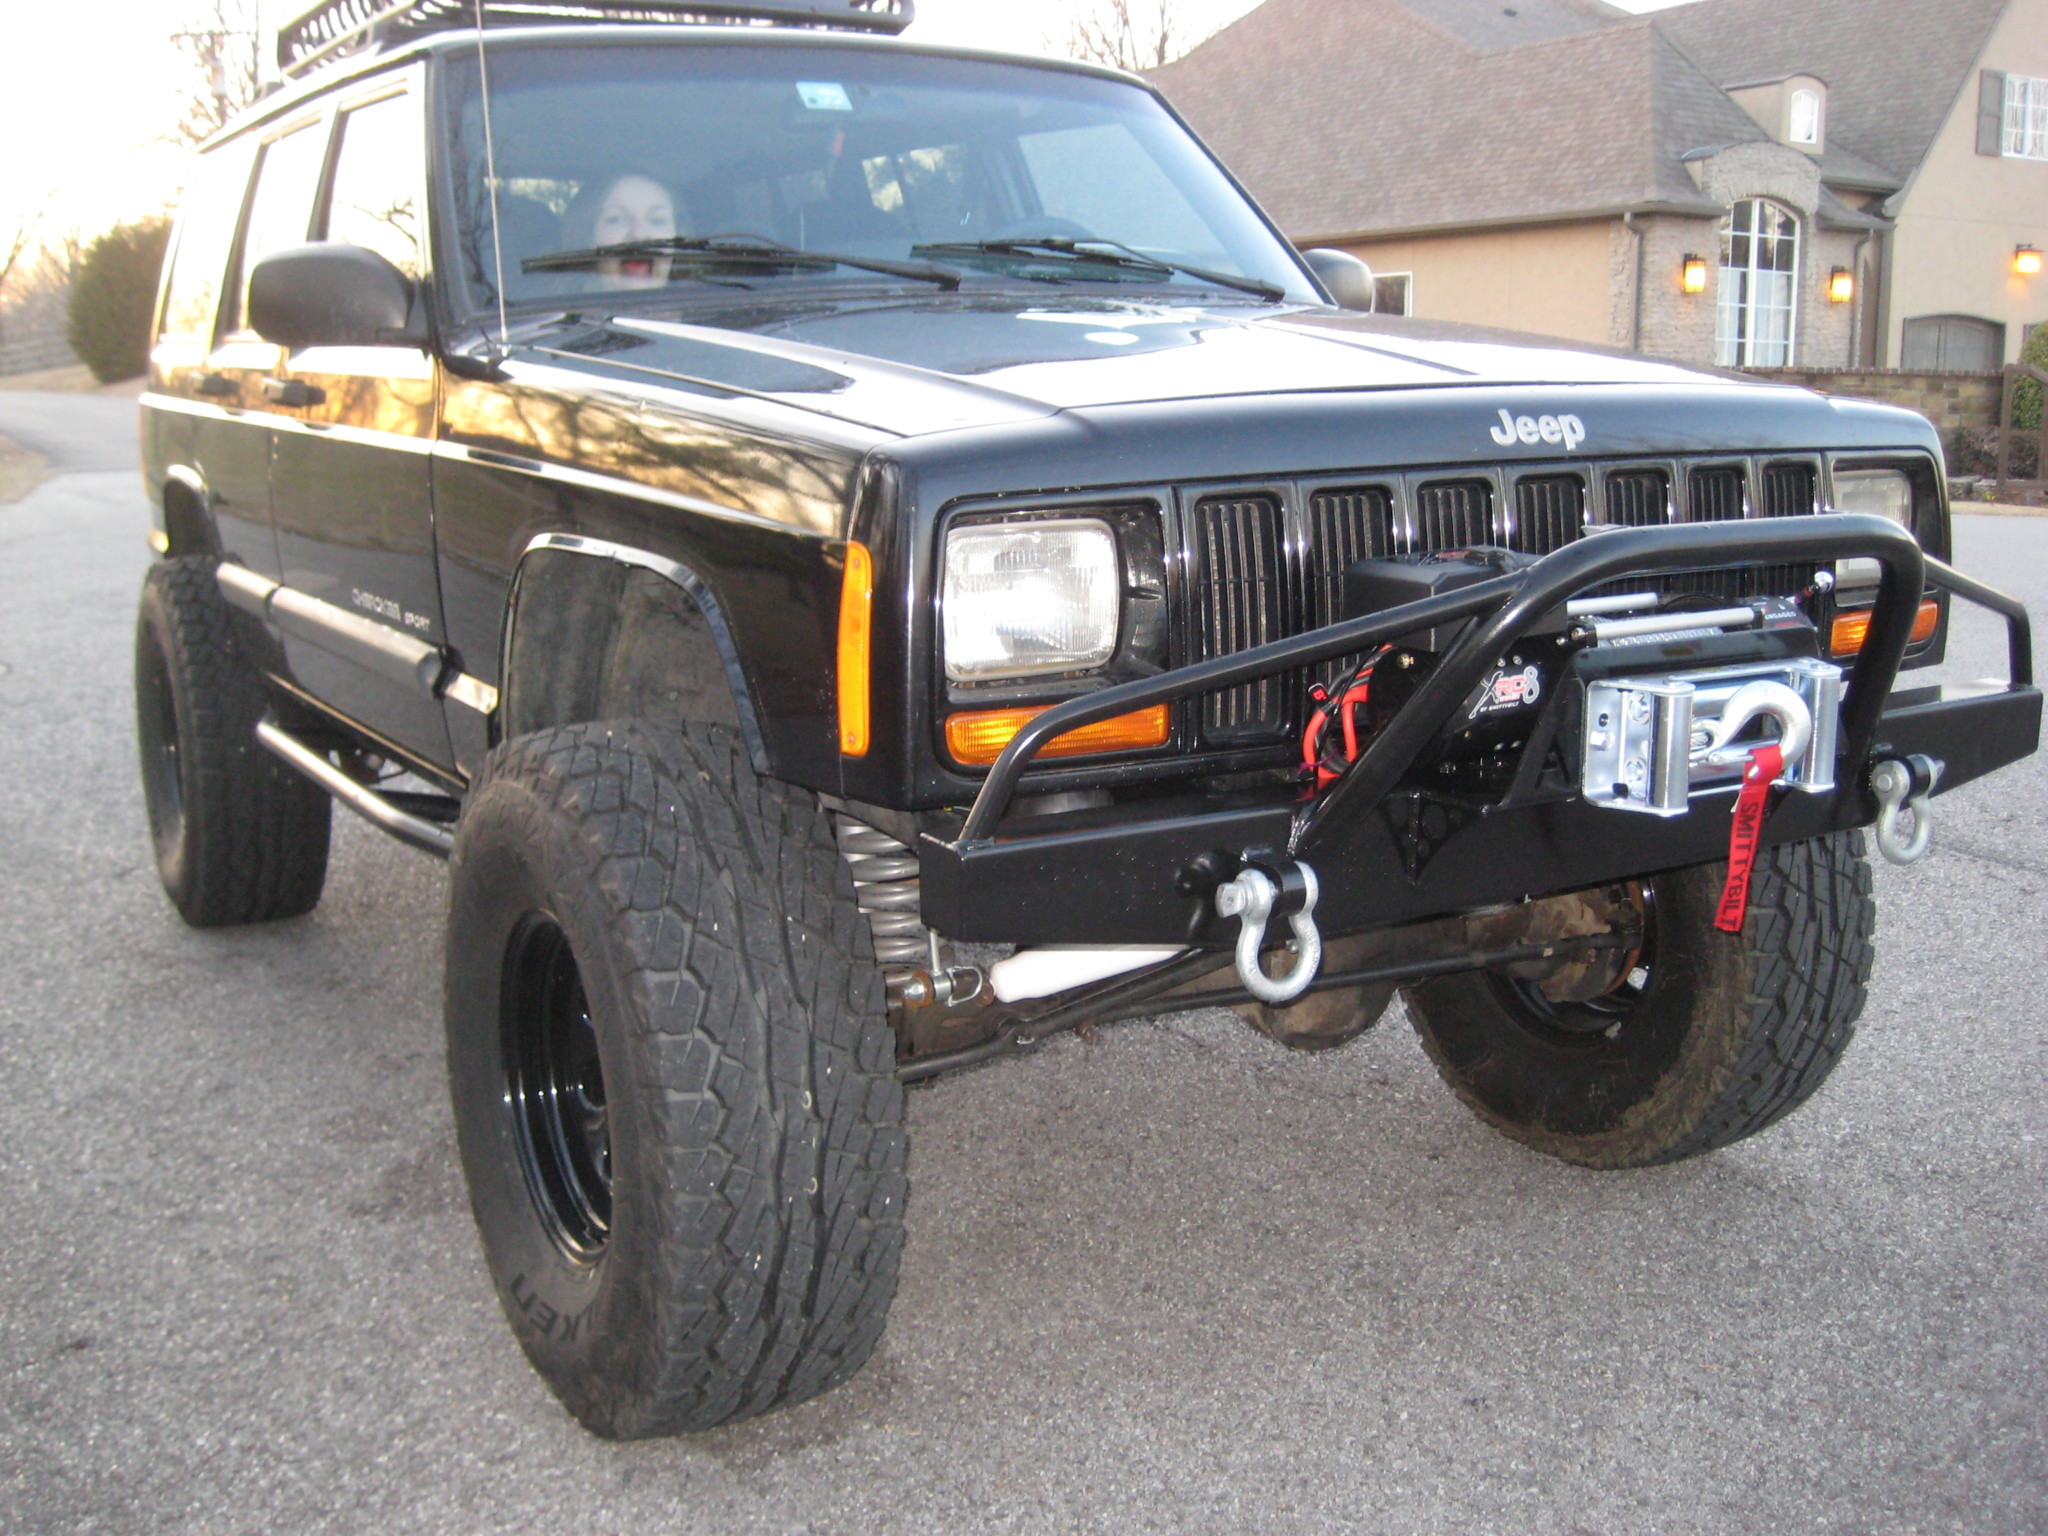 Jeep Cherokee Xj Bumpers >> Elite Prerunner Winch Front And Rear Bumper Set Jeep Cherokee Xj